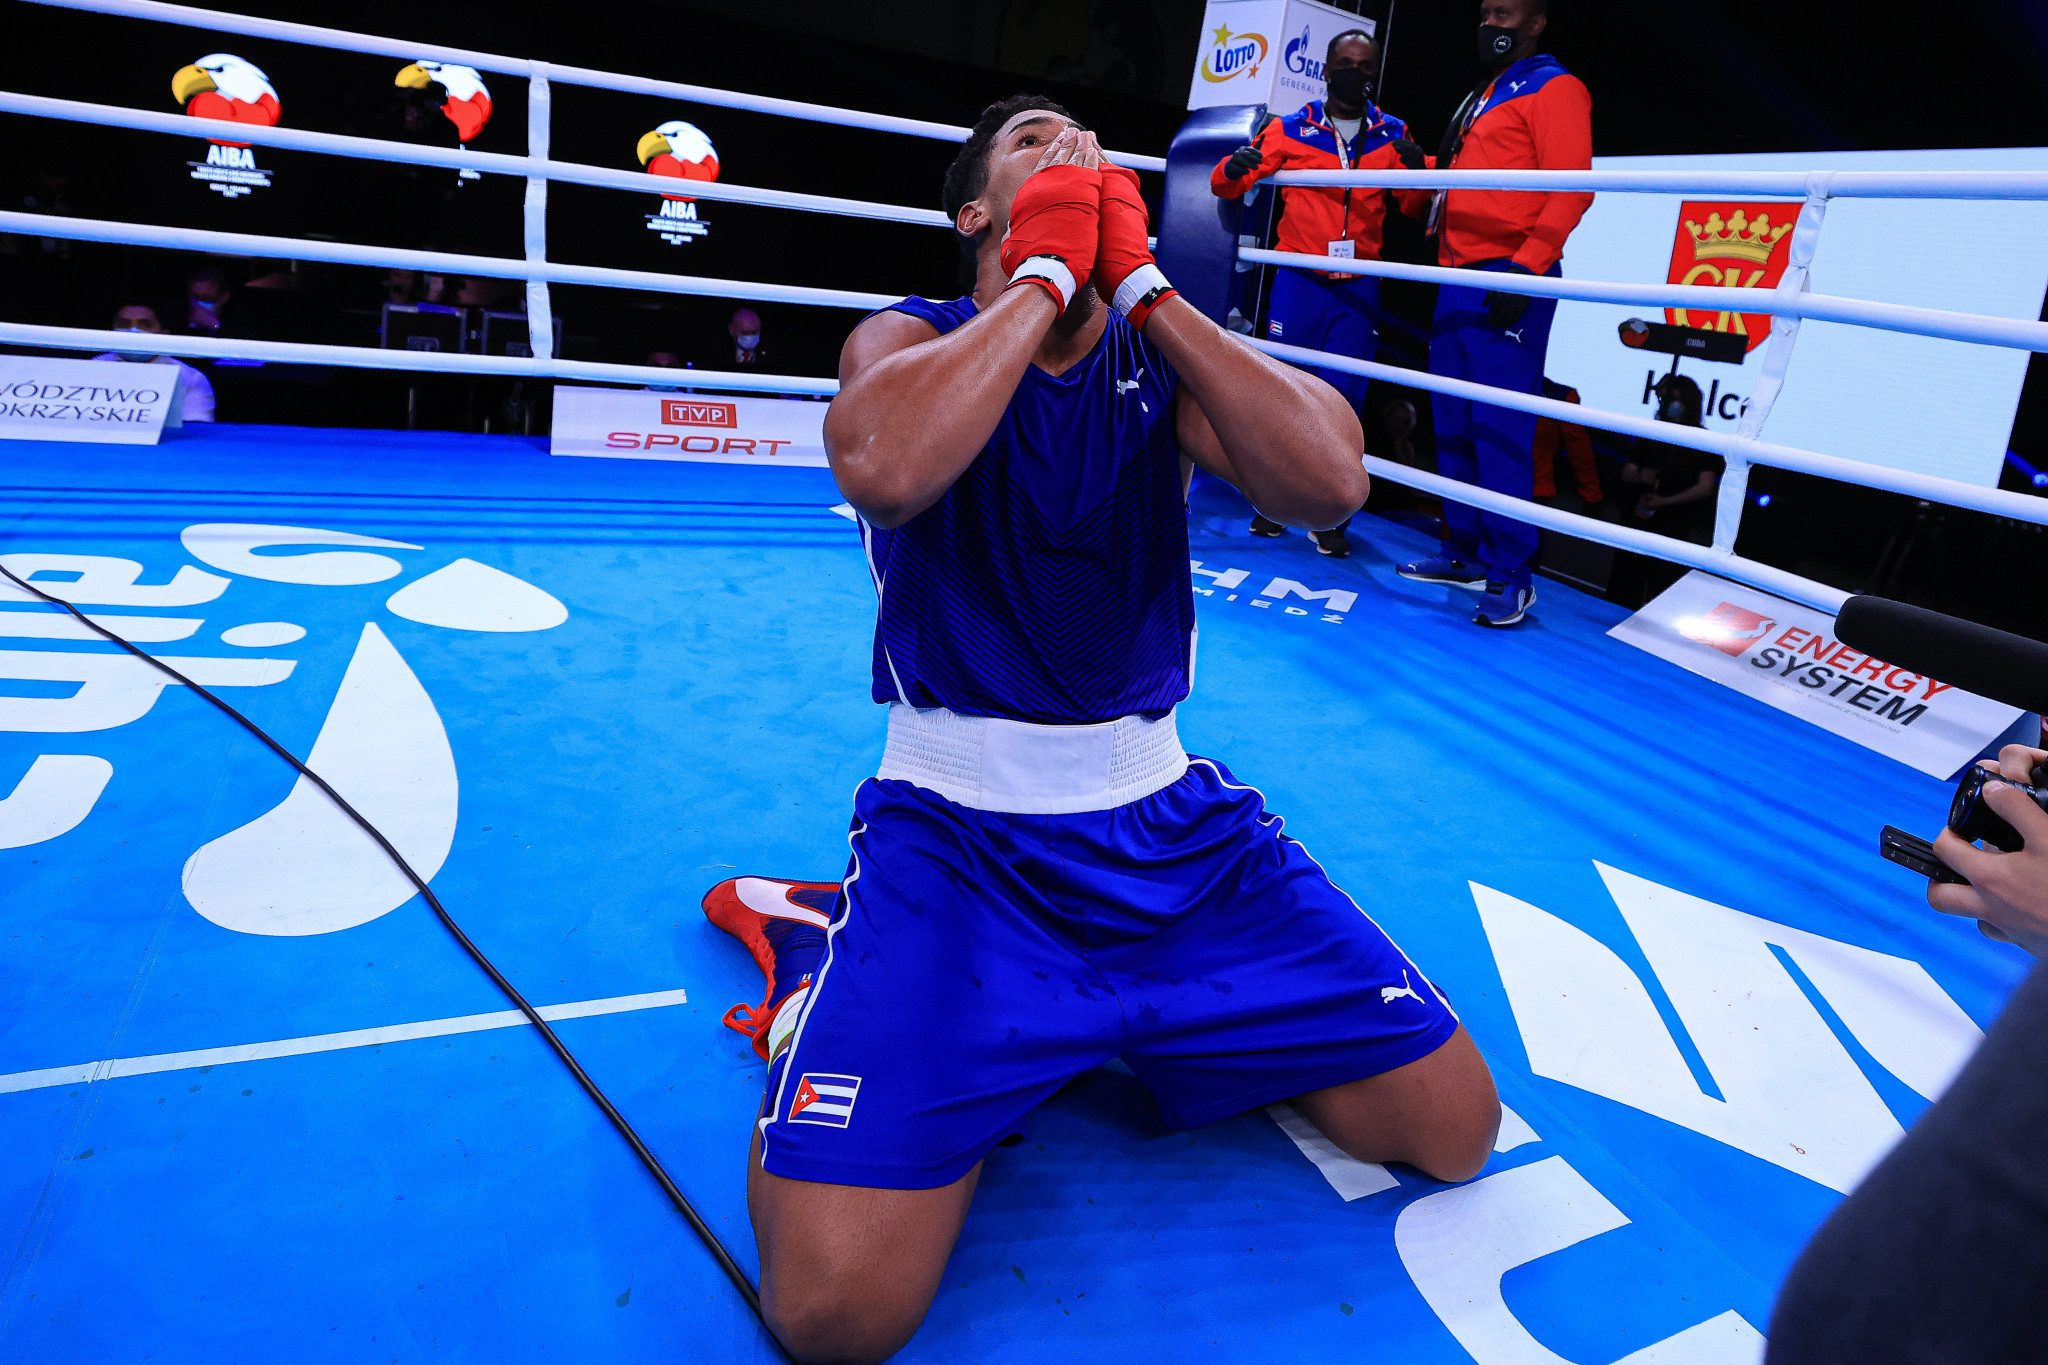 Ten finals took place on the final day of the AIBA Youth World Boxing Championships in Kielce ©AIBA